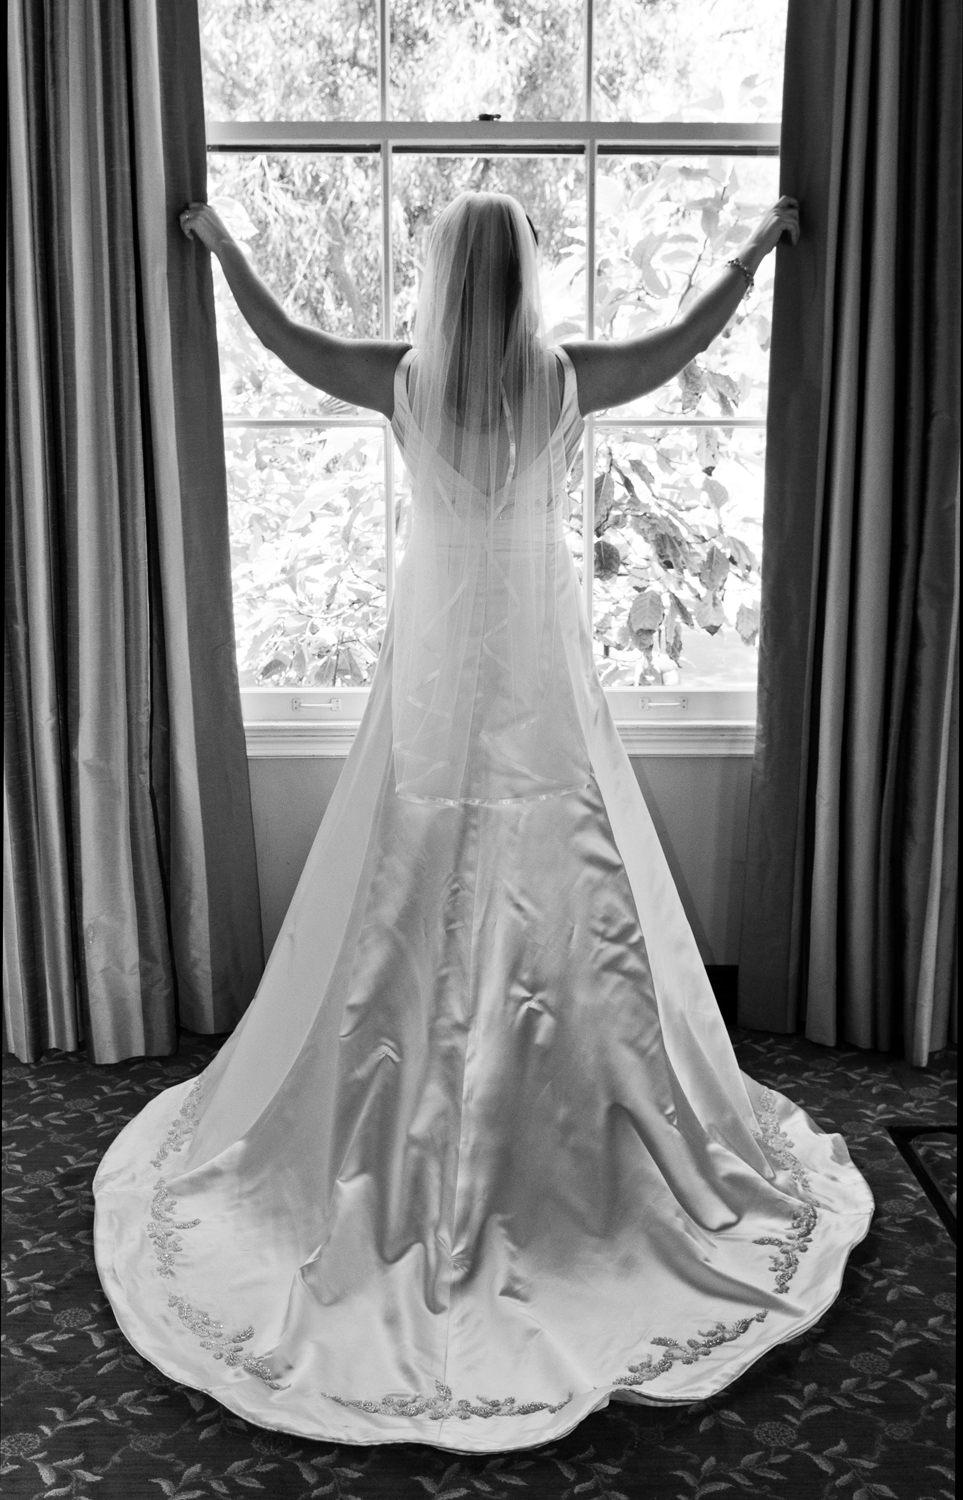 bride-dress-window.jpg